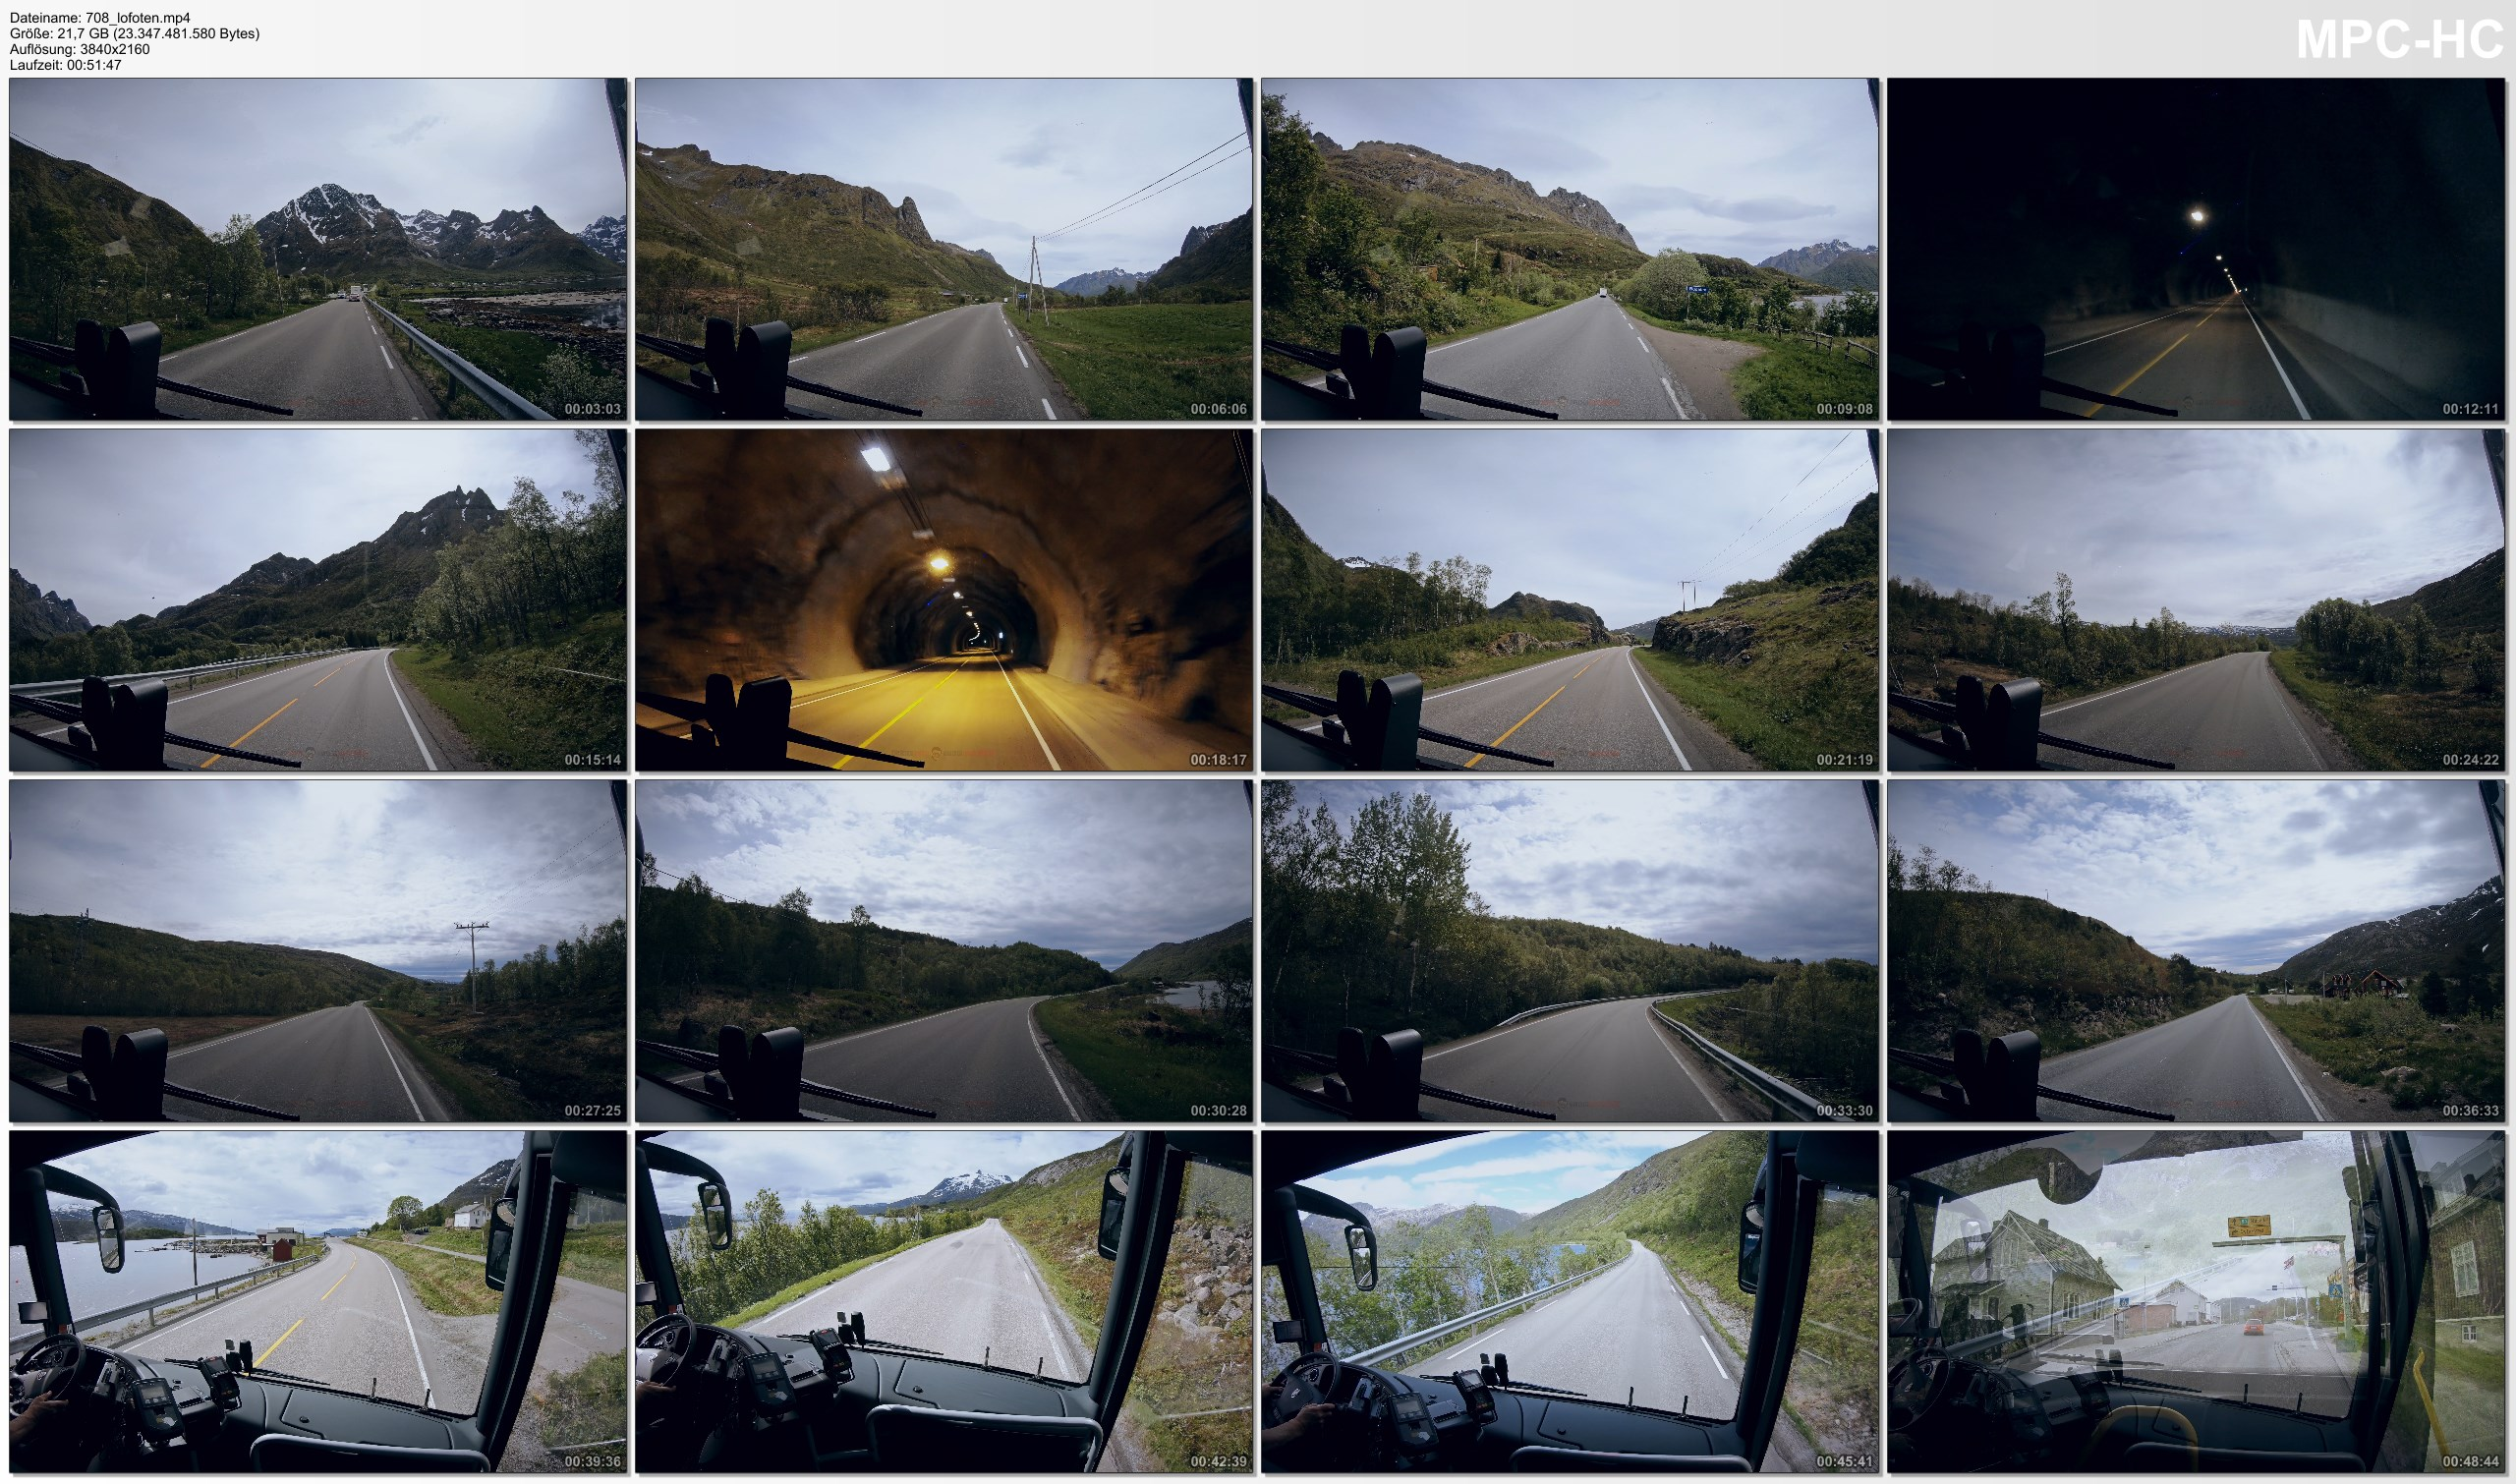 Pictures from Video 【4K】1 HOUR RELAXATION FILM: «Driving the Lofoten» Ultra HD + Chillout Music (for 2160p Ambient TV)